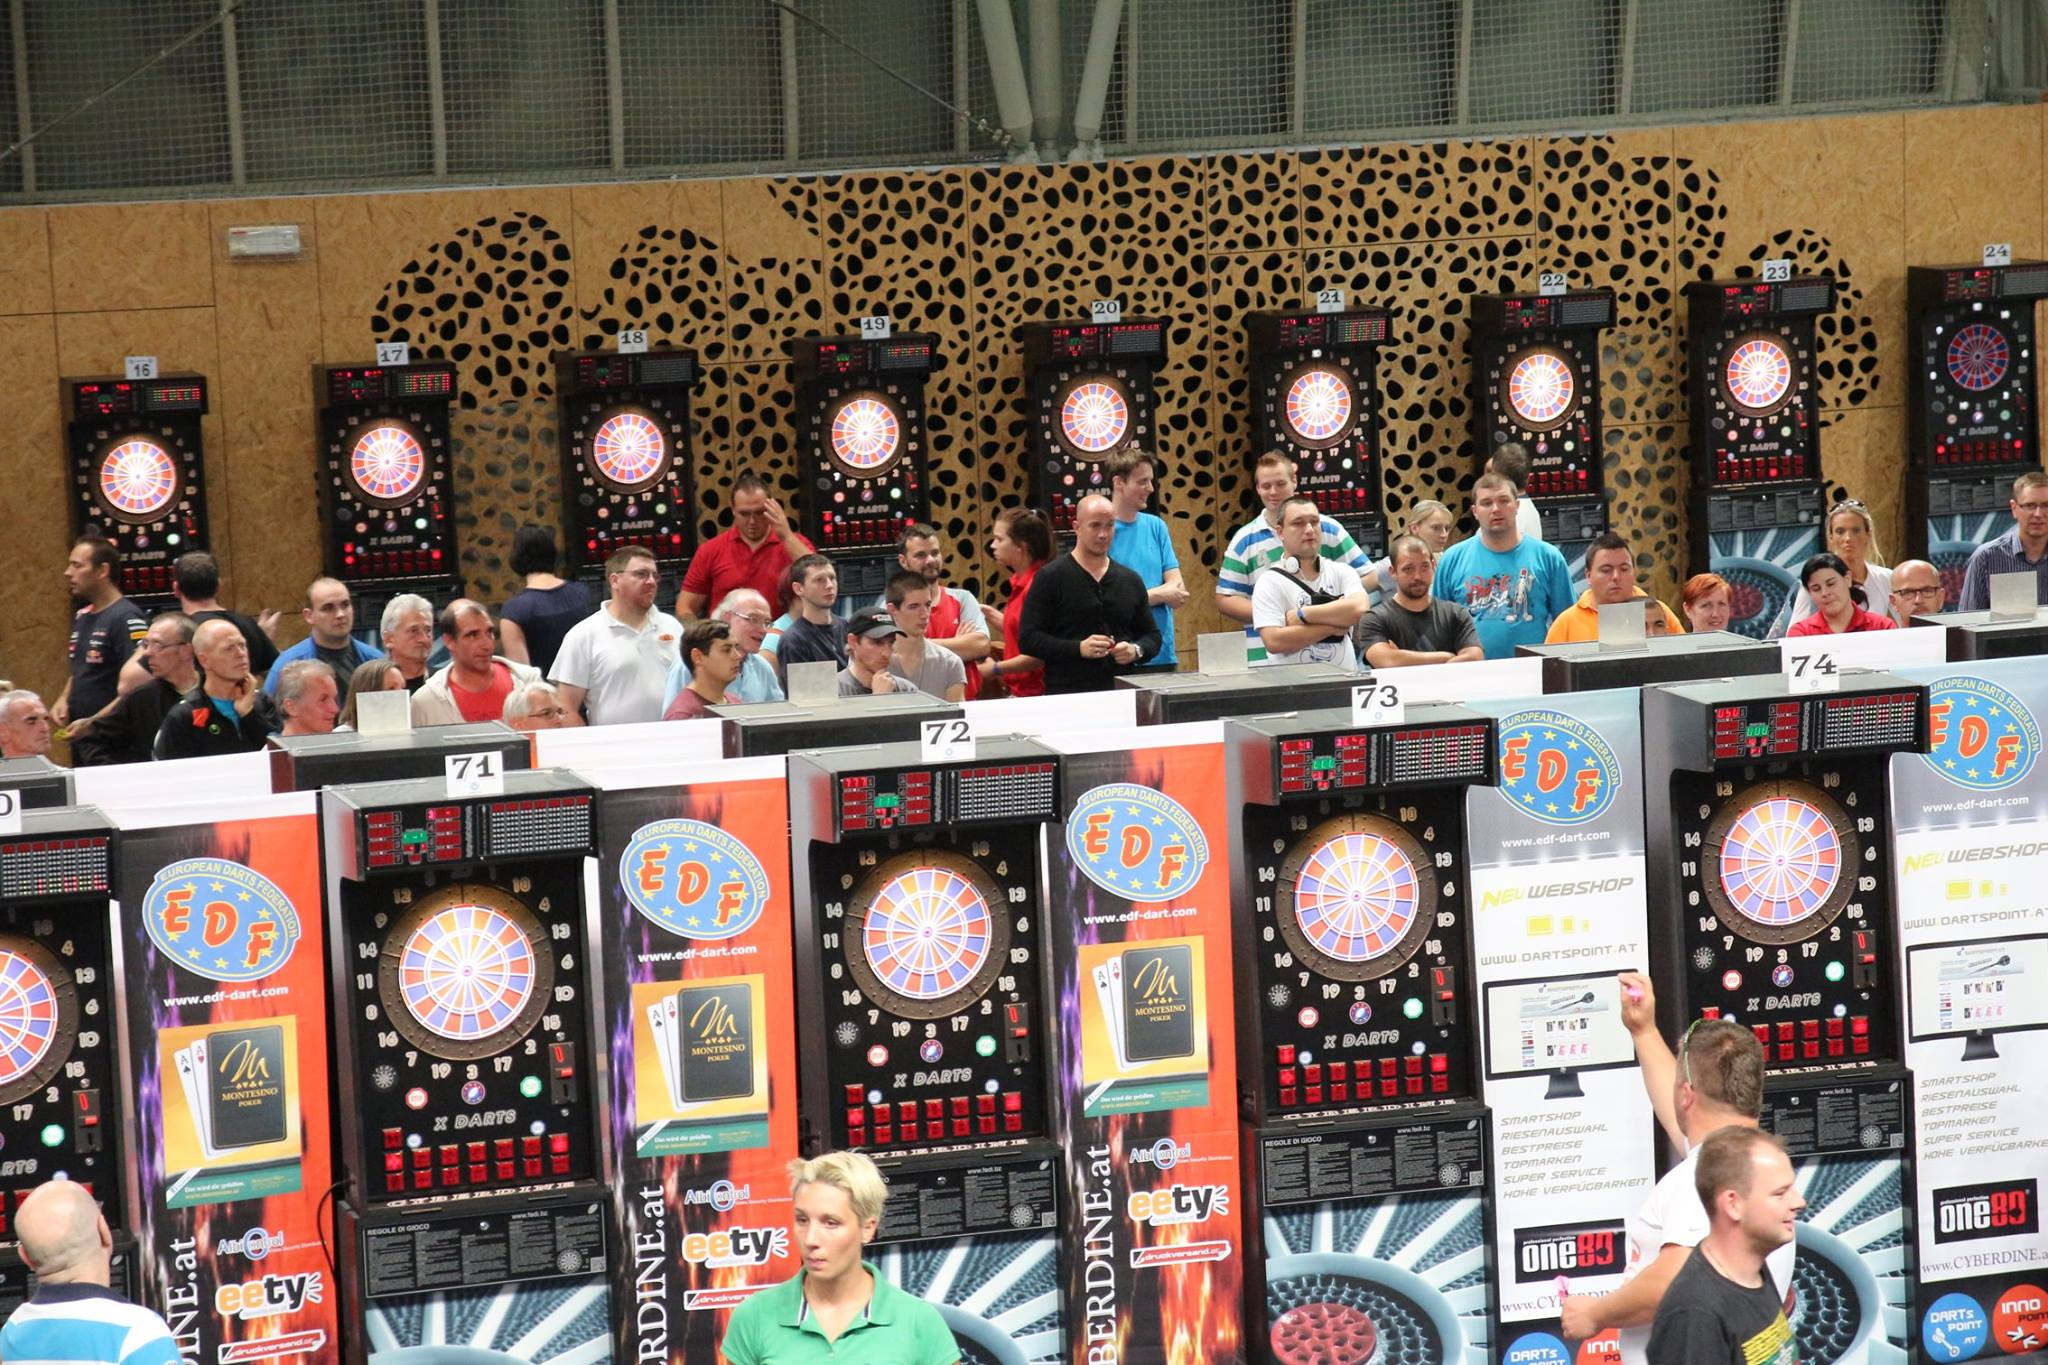 xdarts-edf-tournament-slovenia-8